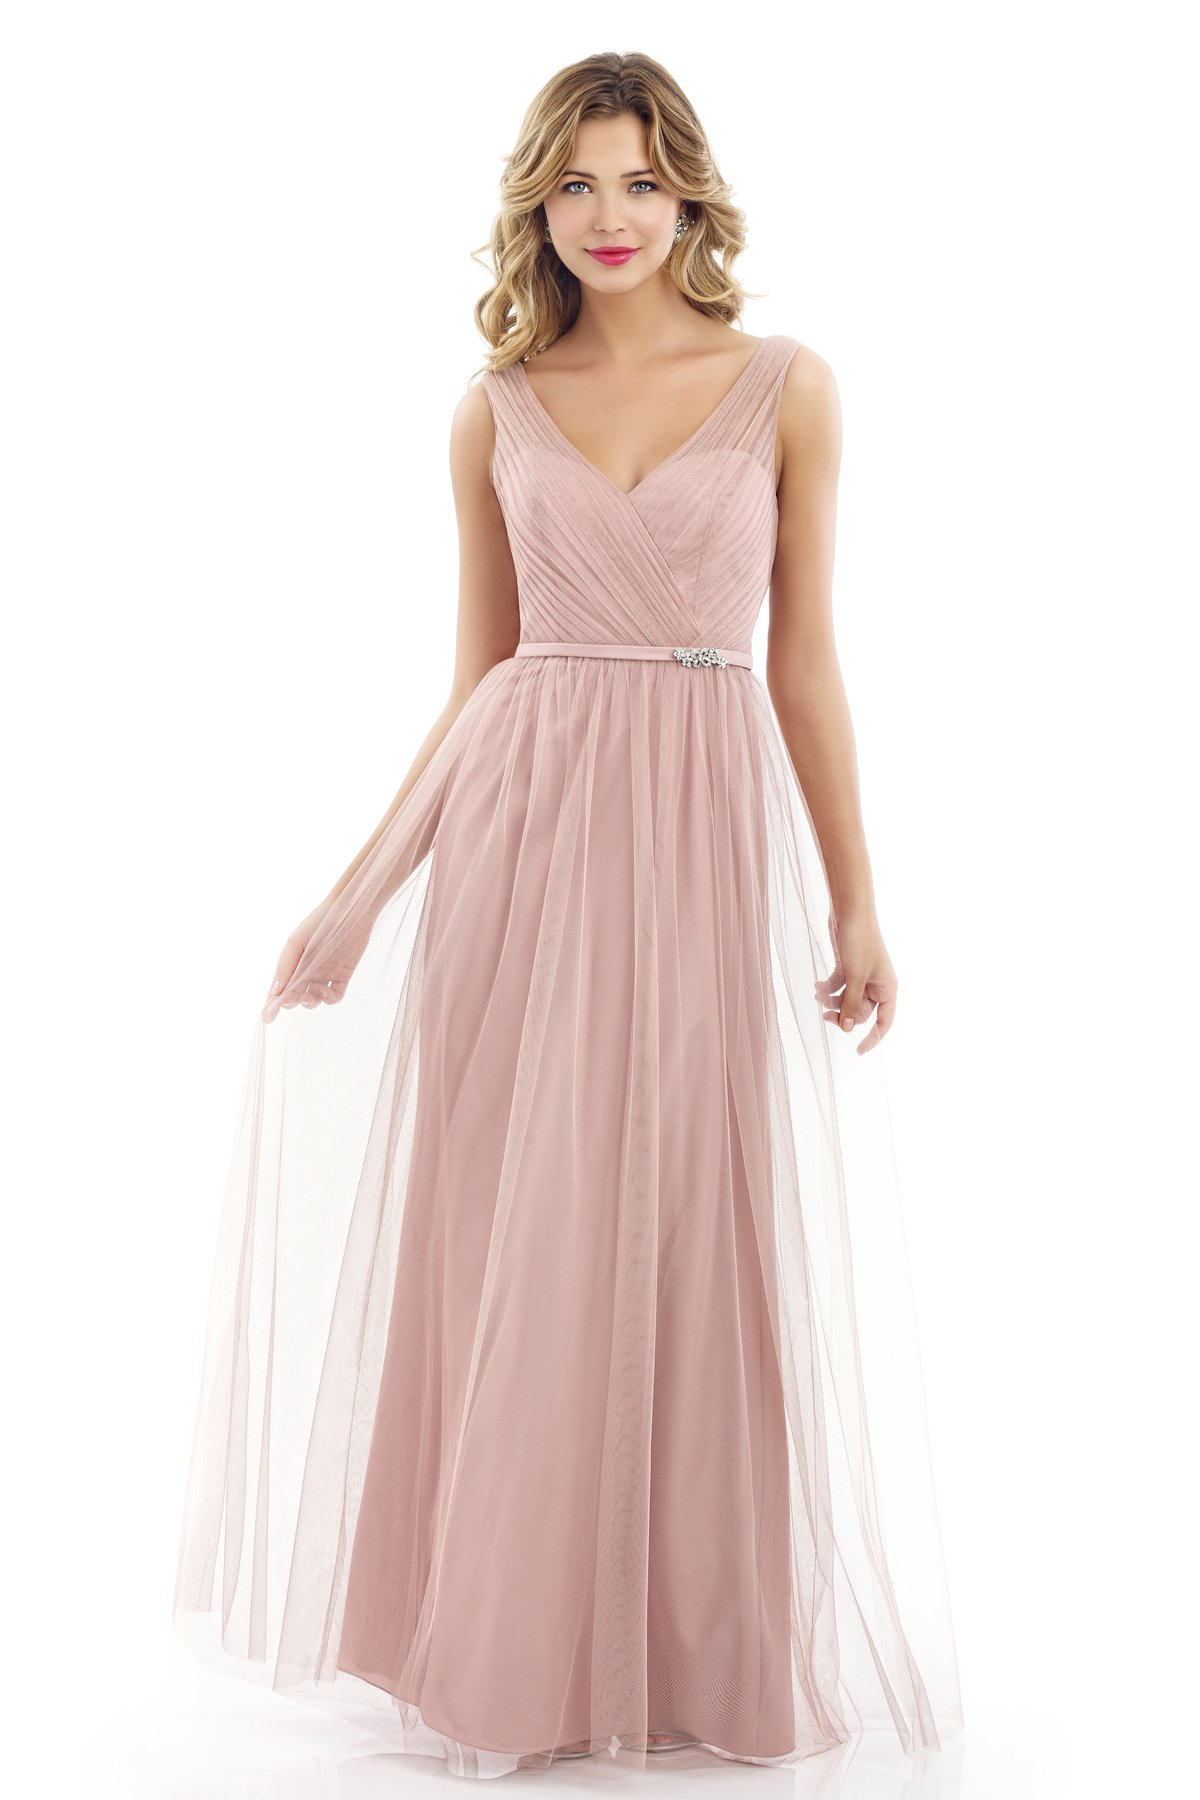 Alexia Designs 4232 Bridesmaid In Mauve Or Silver Sale